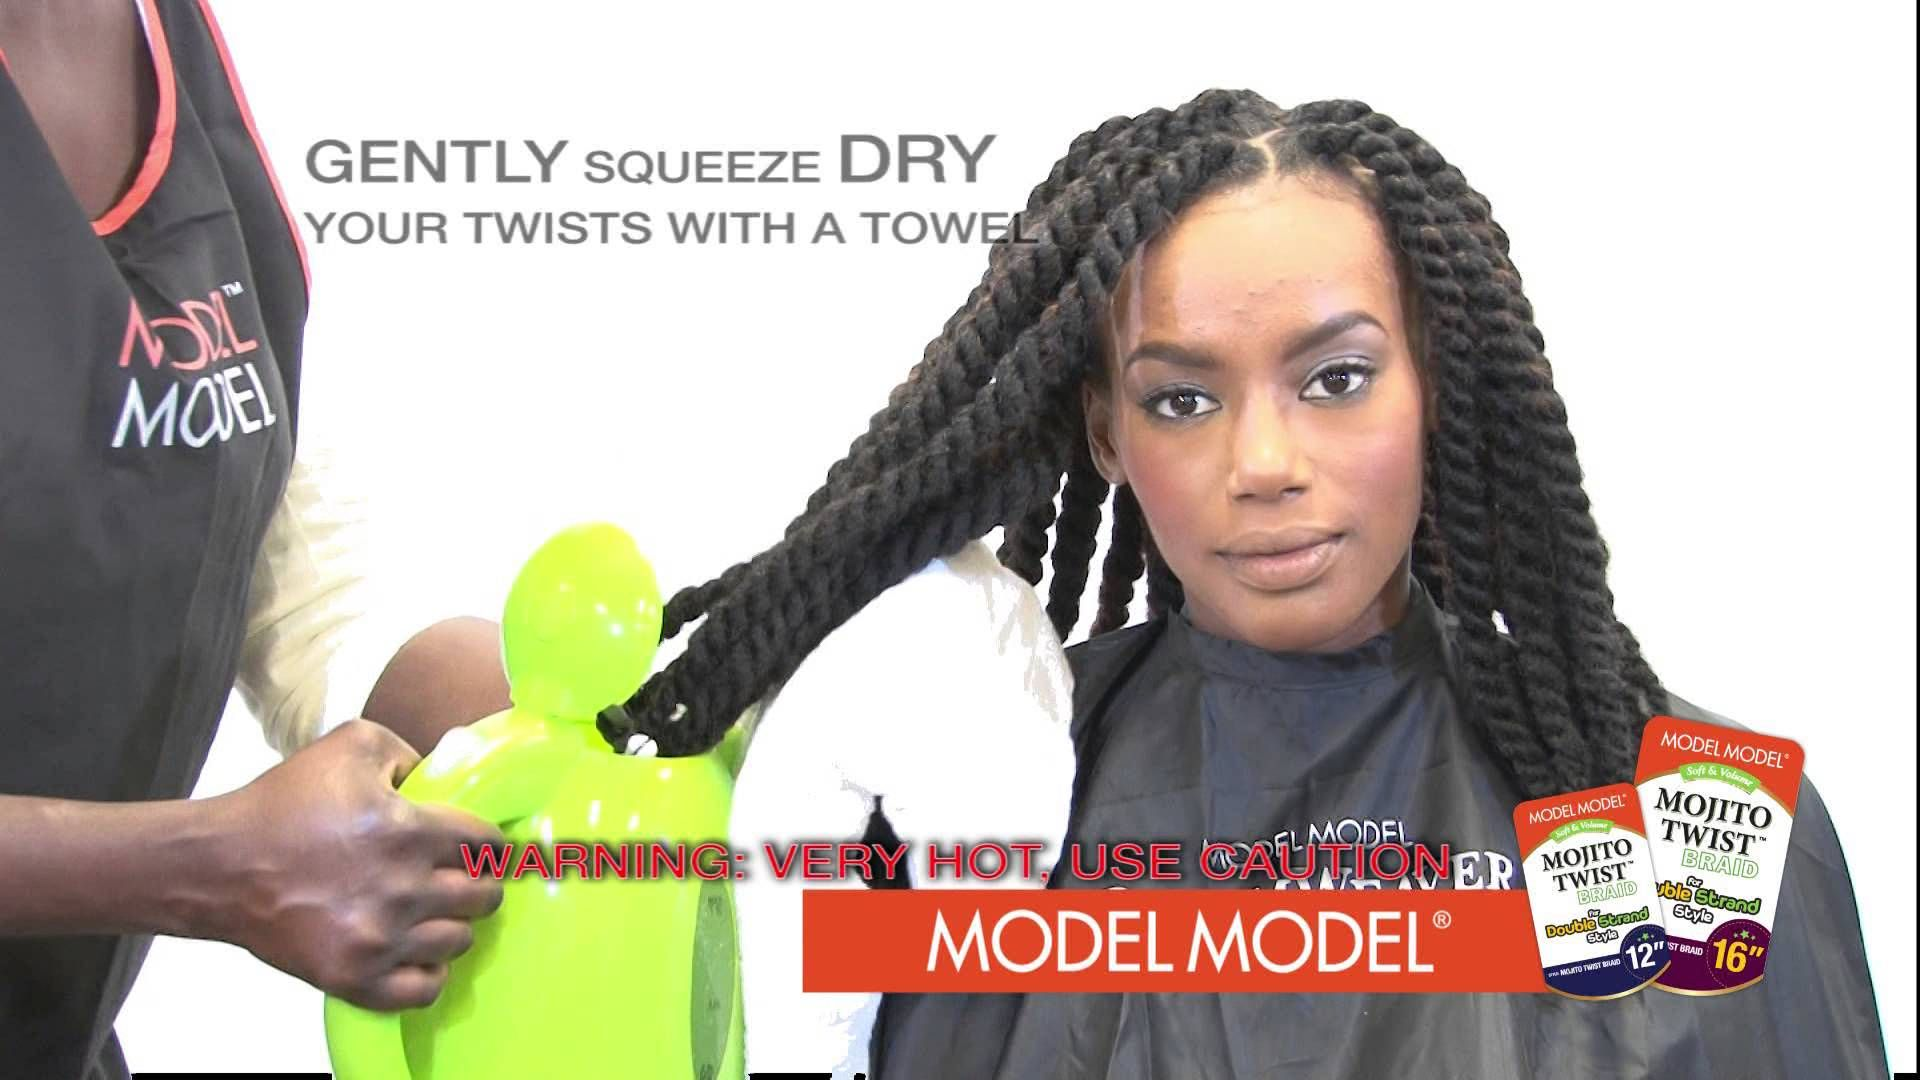 Full tutorial on how to install mojito twist hair my hairstyles